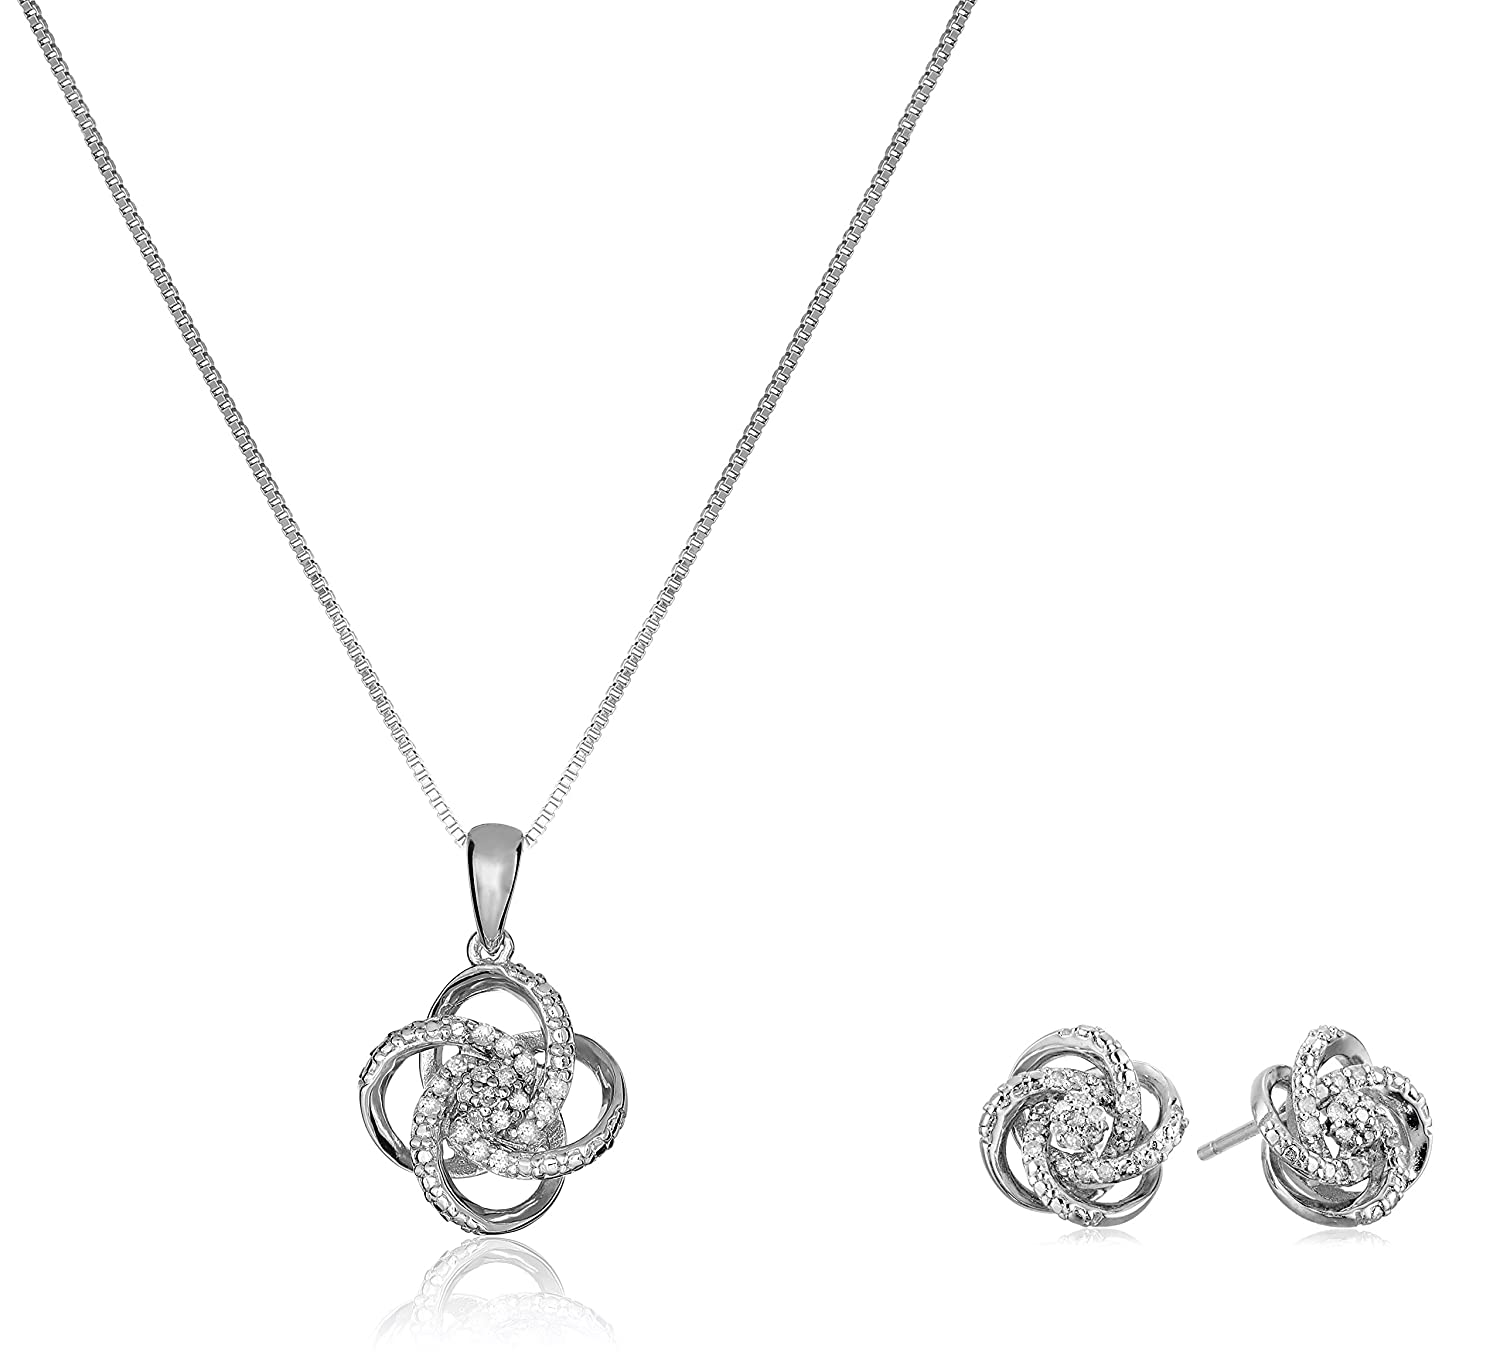 Amazon sterling silver diamond love knot pendant necklace and amazon sterling silver diamond love knot pendant necklace and earrings boxed jewelry set 14cttw j k color i2 i3 clarity 18 jewelry aloadofball